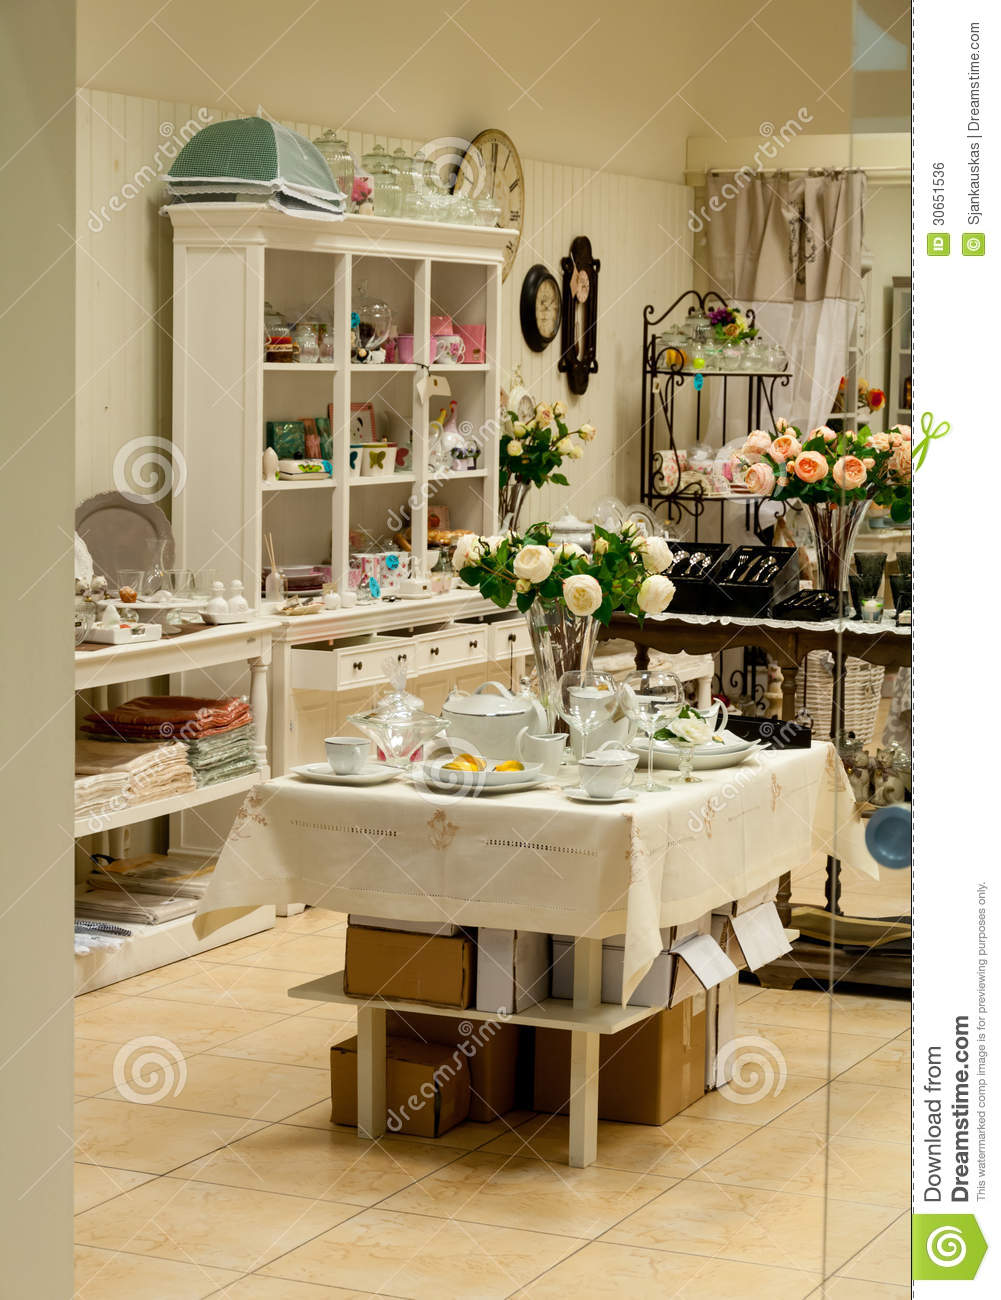 Home decor and dishes shop royalty free stock image for House and home decorating